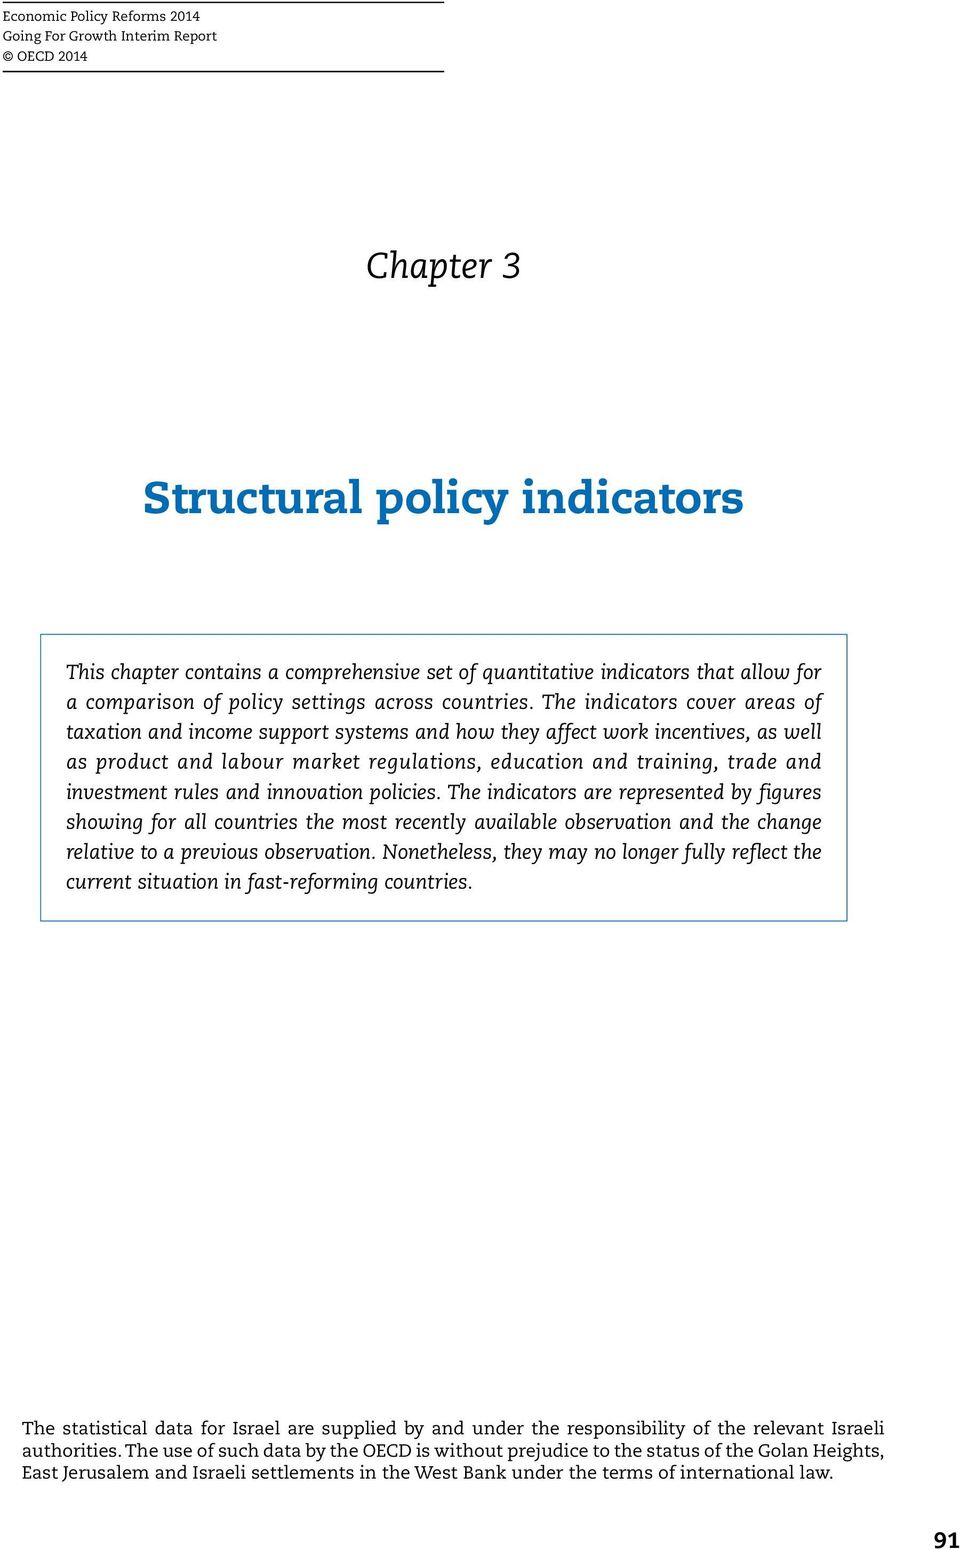 The indicators cover areas of taxation and income support systems and how they affect work incentives, as well as product and labour market regulations, education and training, trade and investment